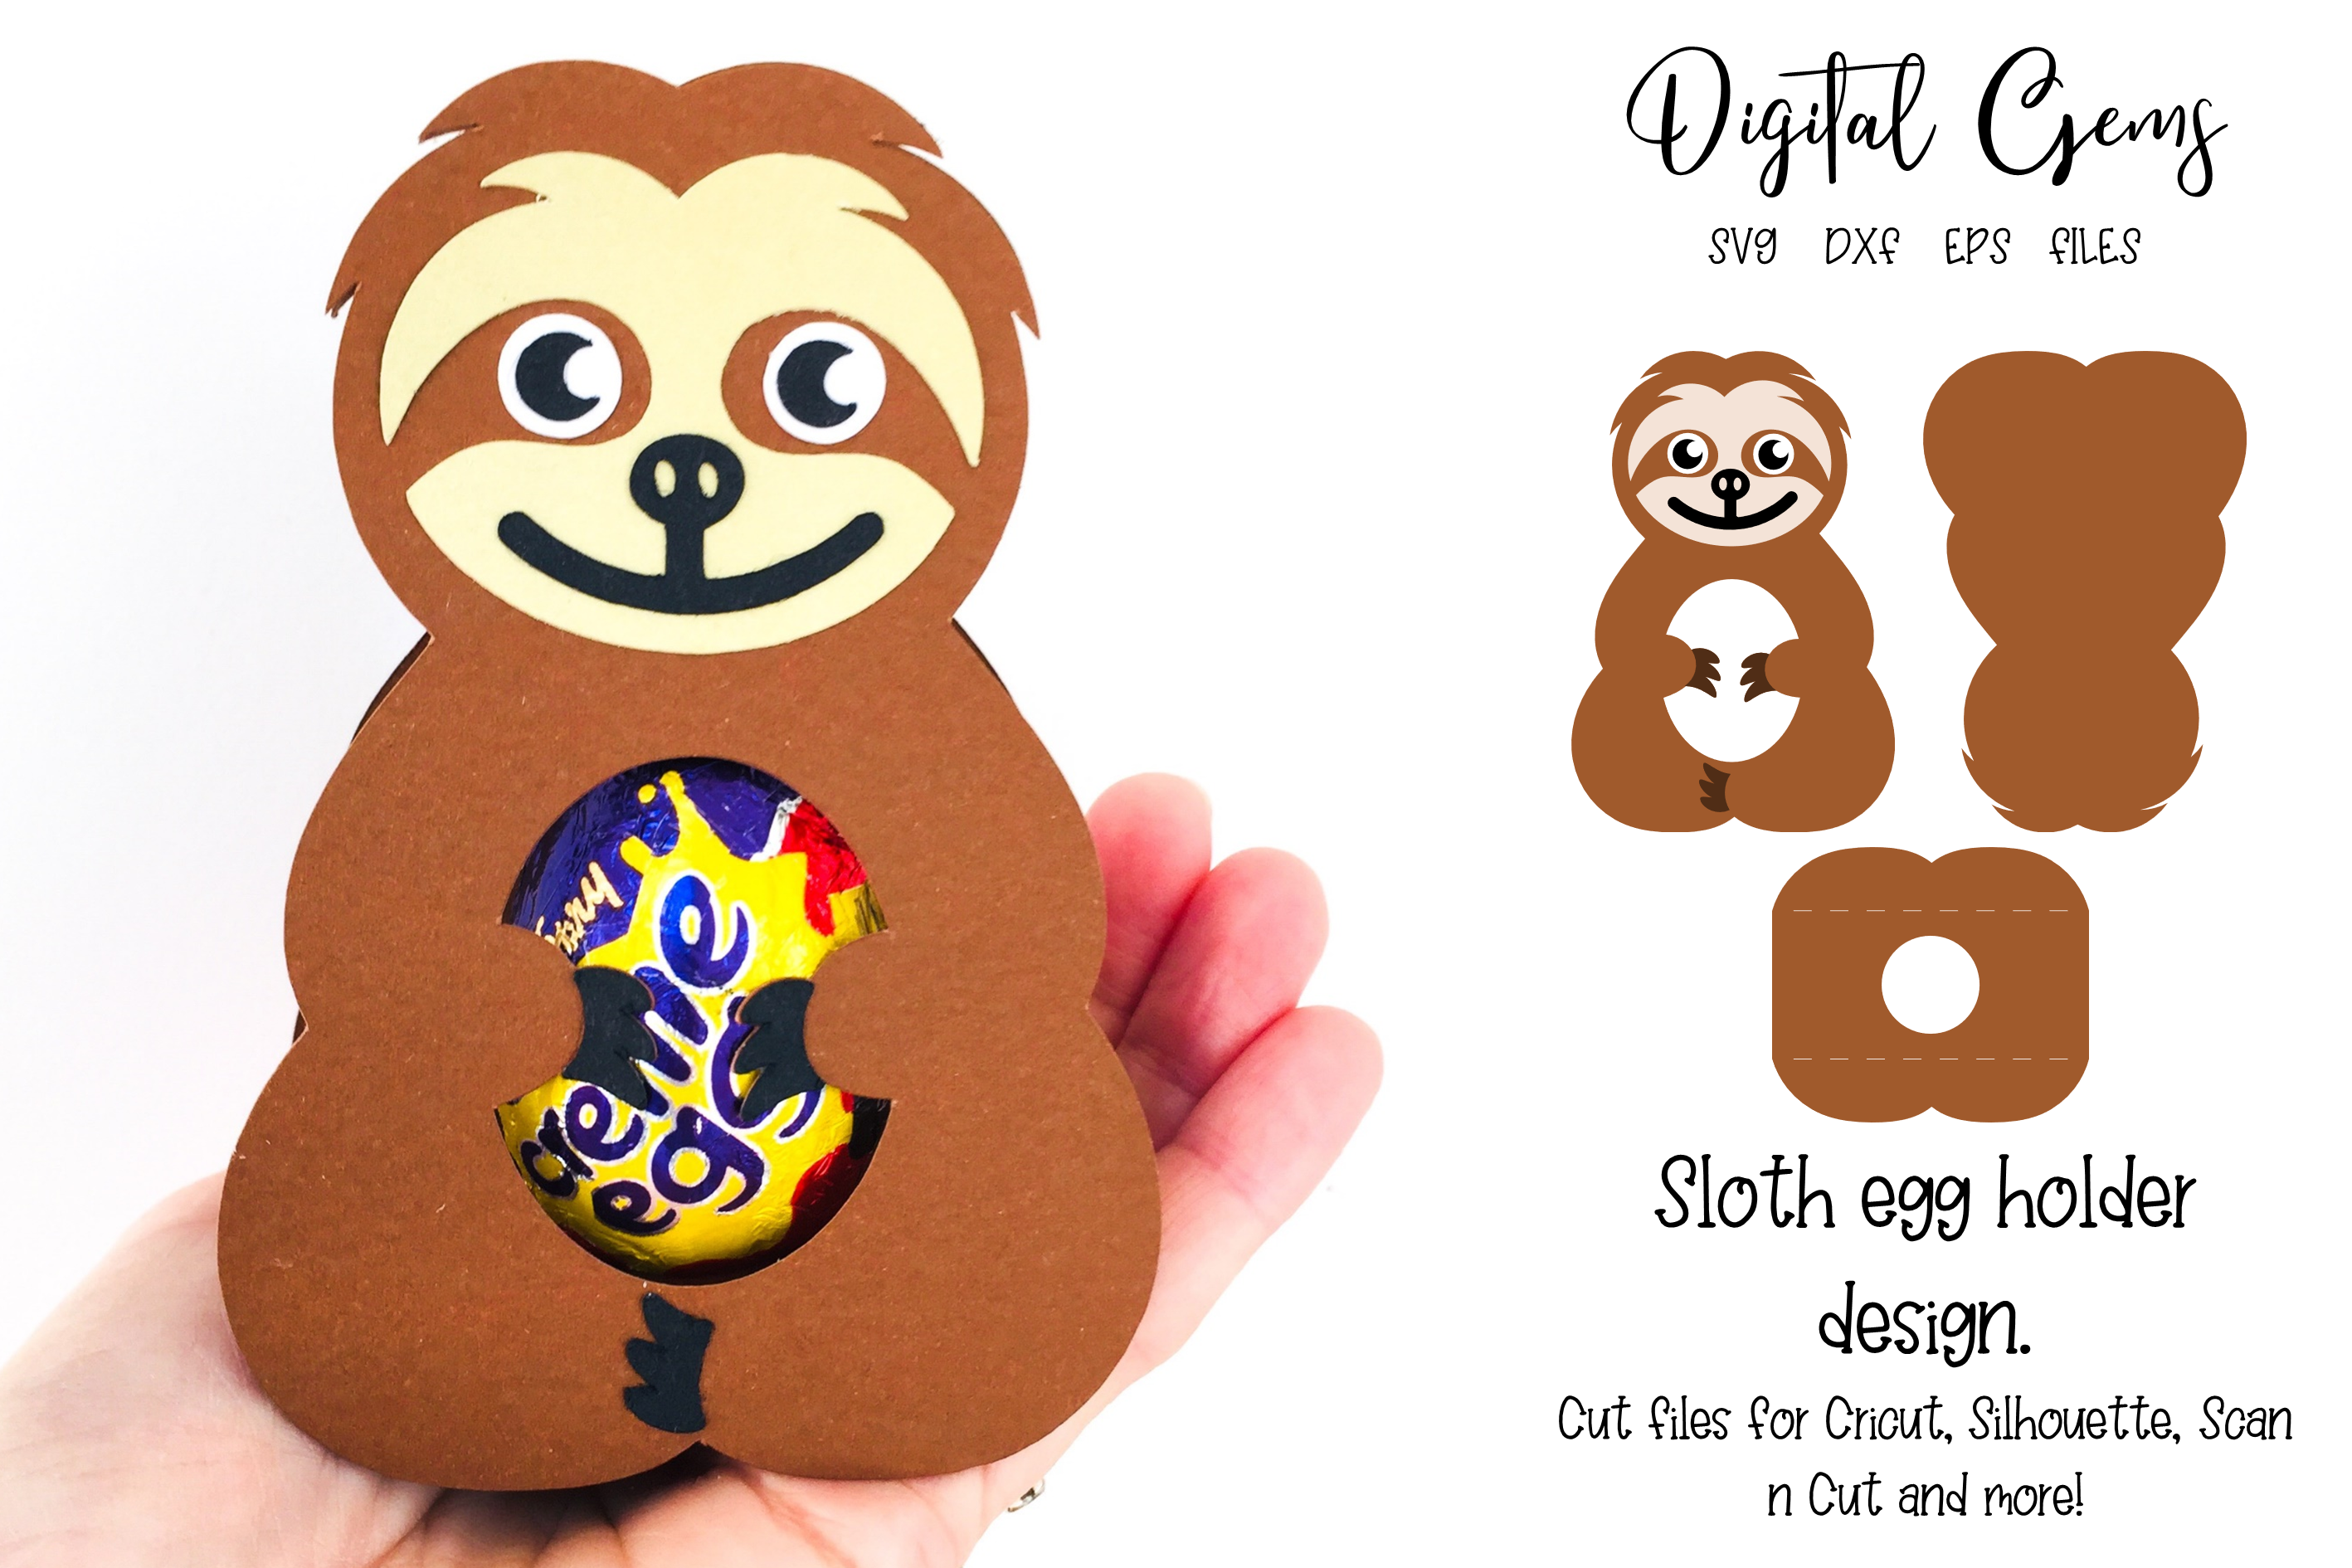 Sloth Egg Holder Design Graphic By Digital Gems Creative Fabrica